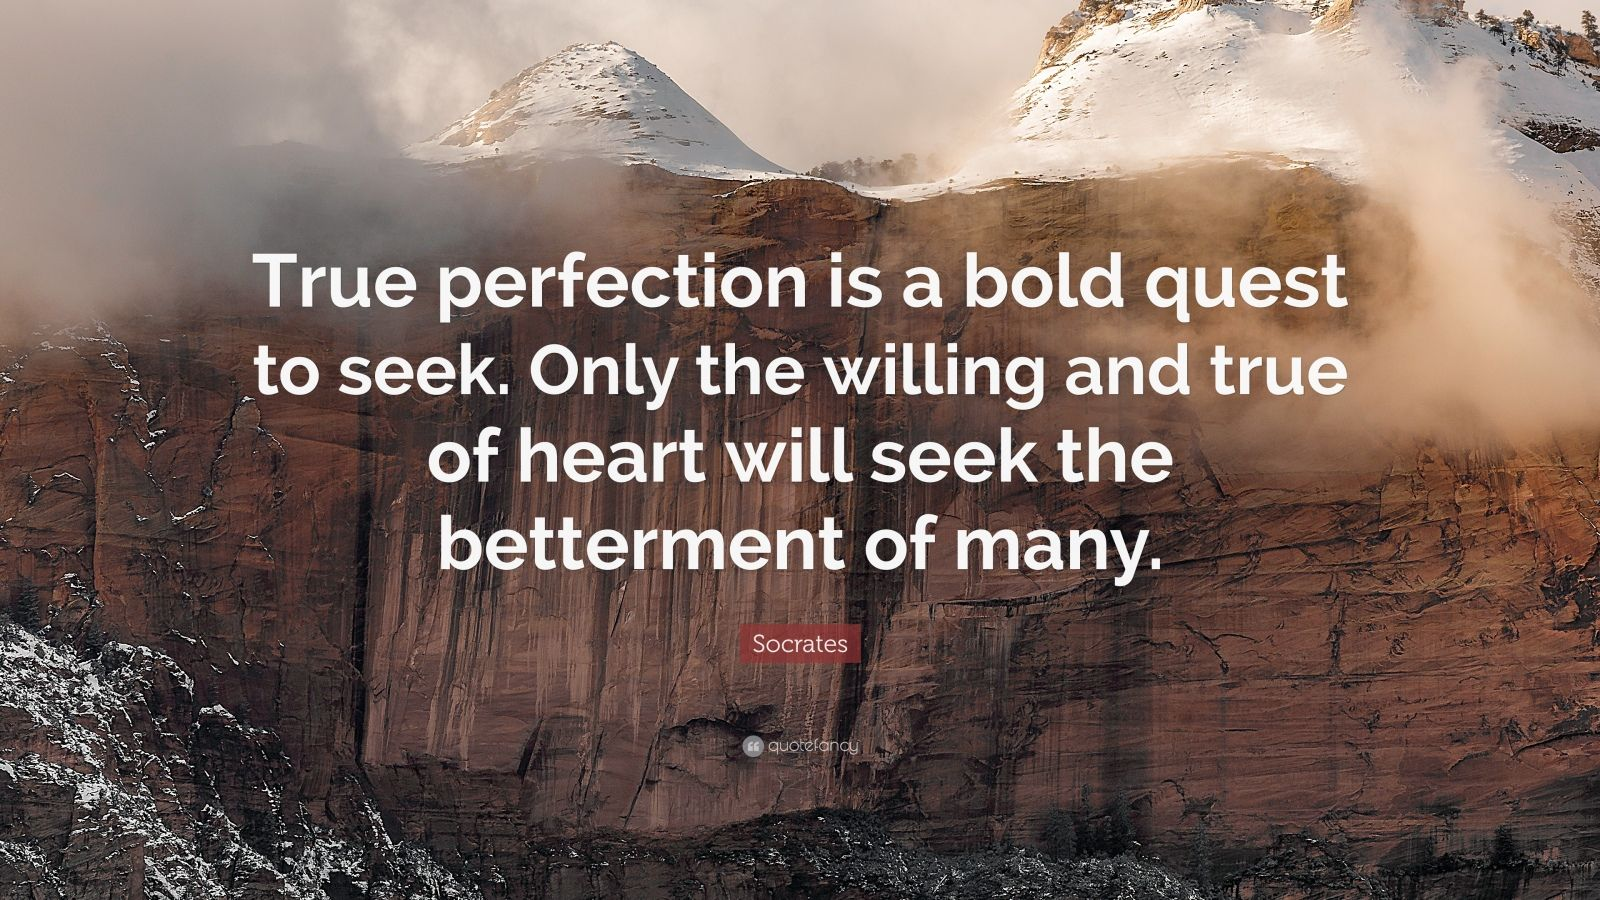 """Socrates Quote: """"True perfection is a bold quest to seek. Only the willing and true of heart will seek the betterment of many."""""""